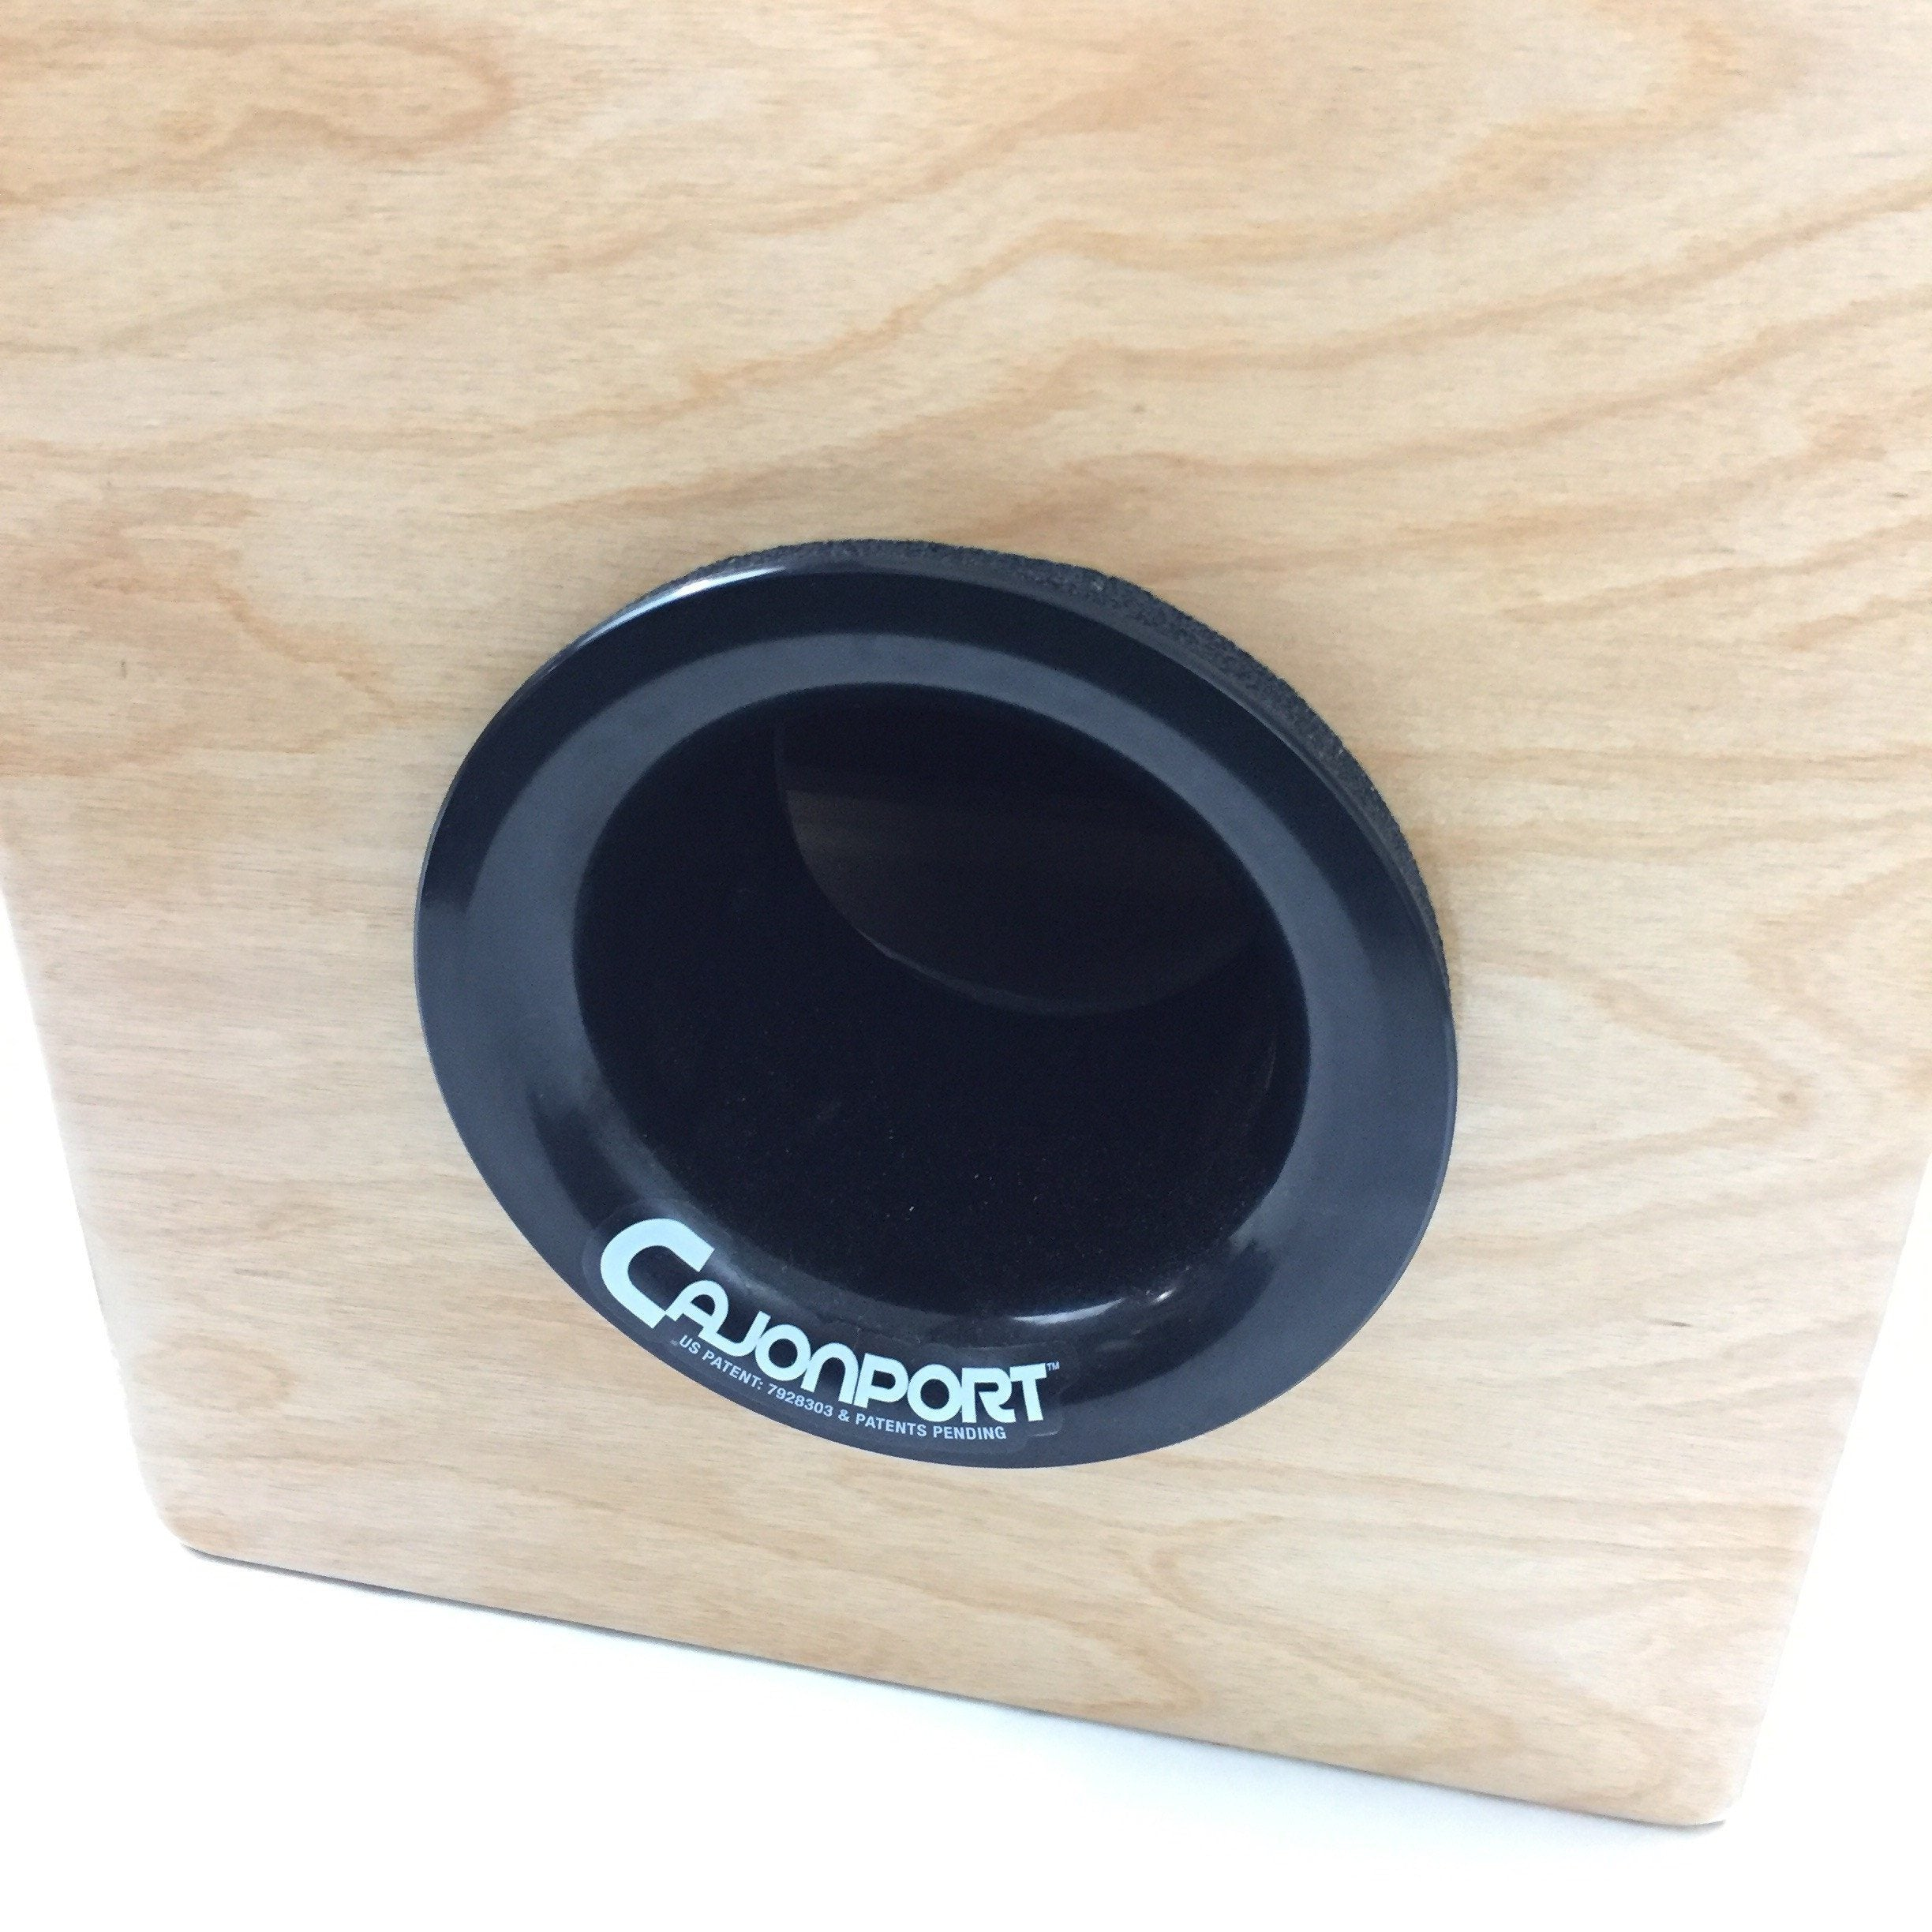 Cajon Accessories - CajonPort™: Cajon Bass Enhancer